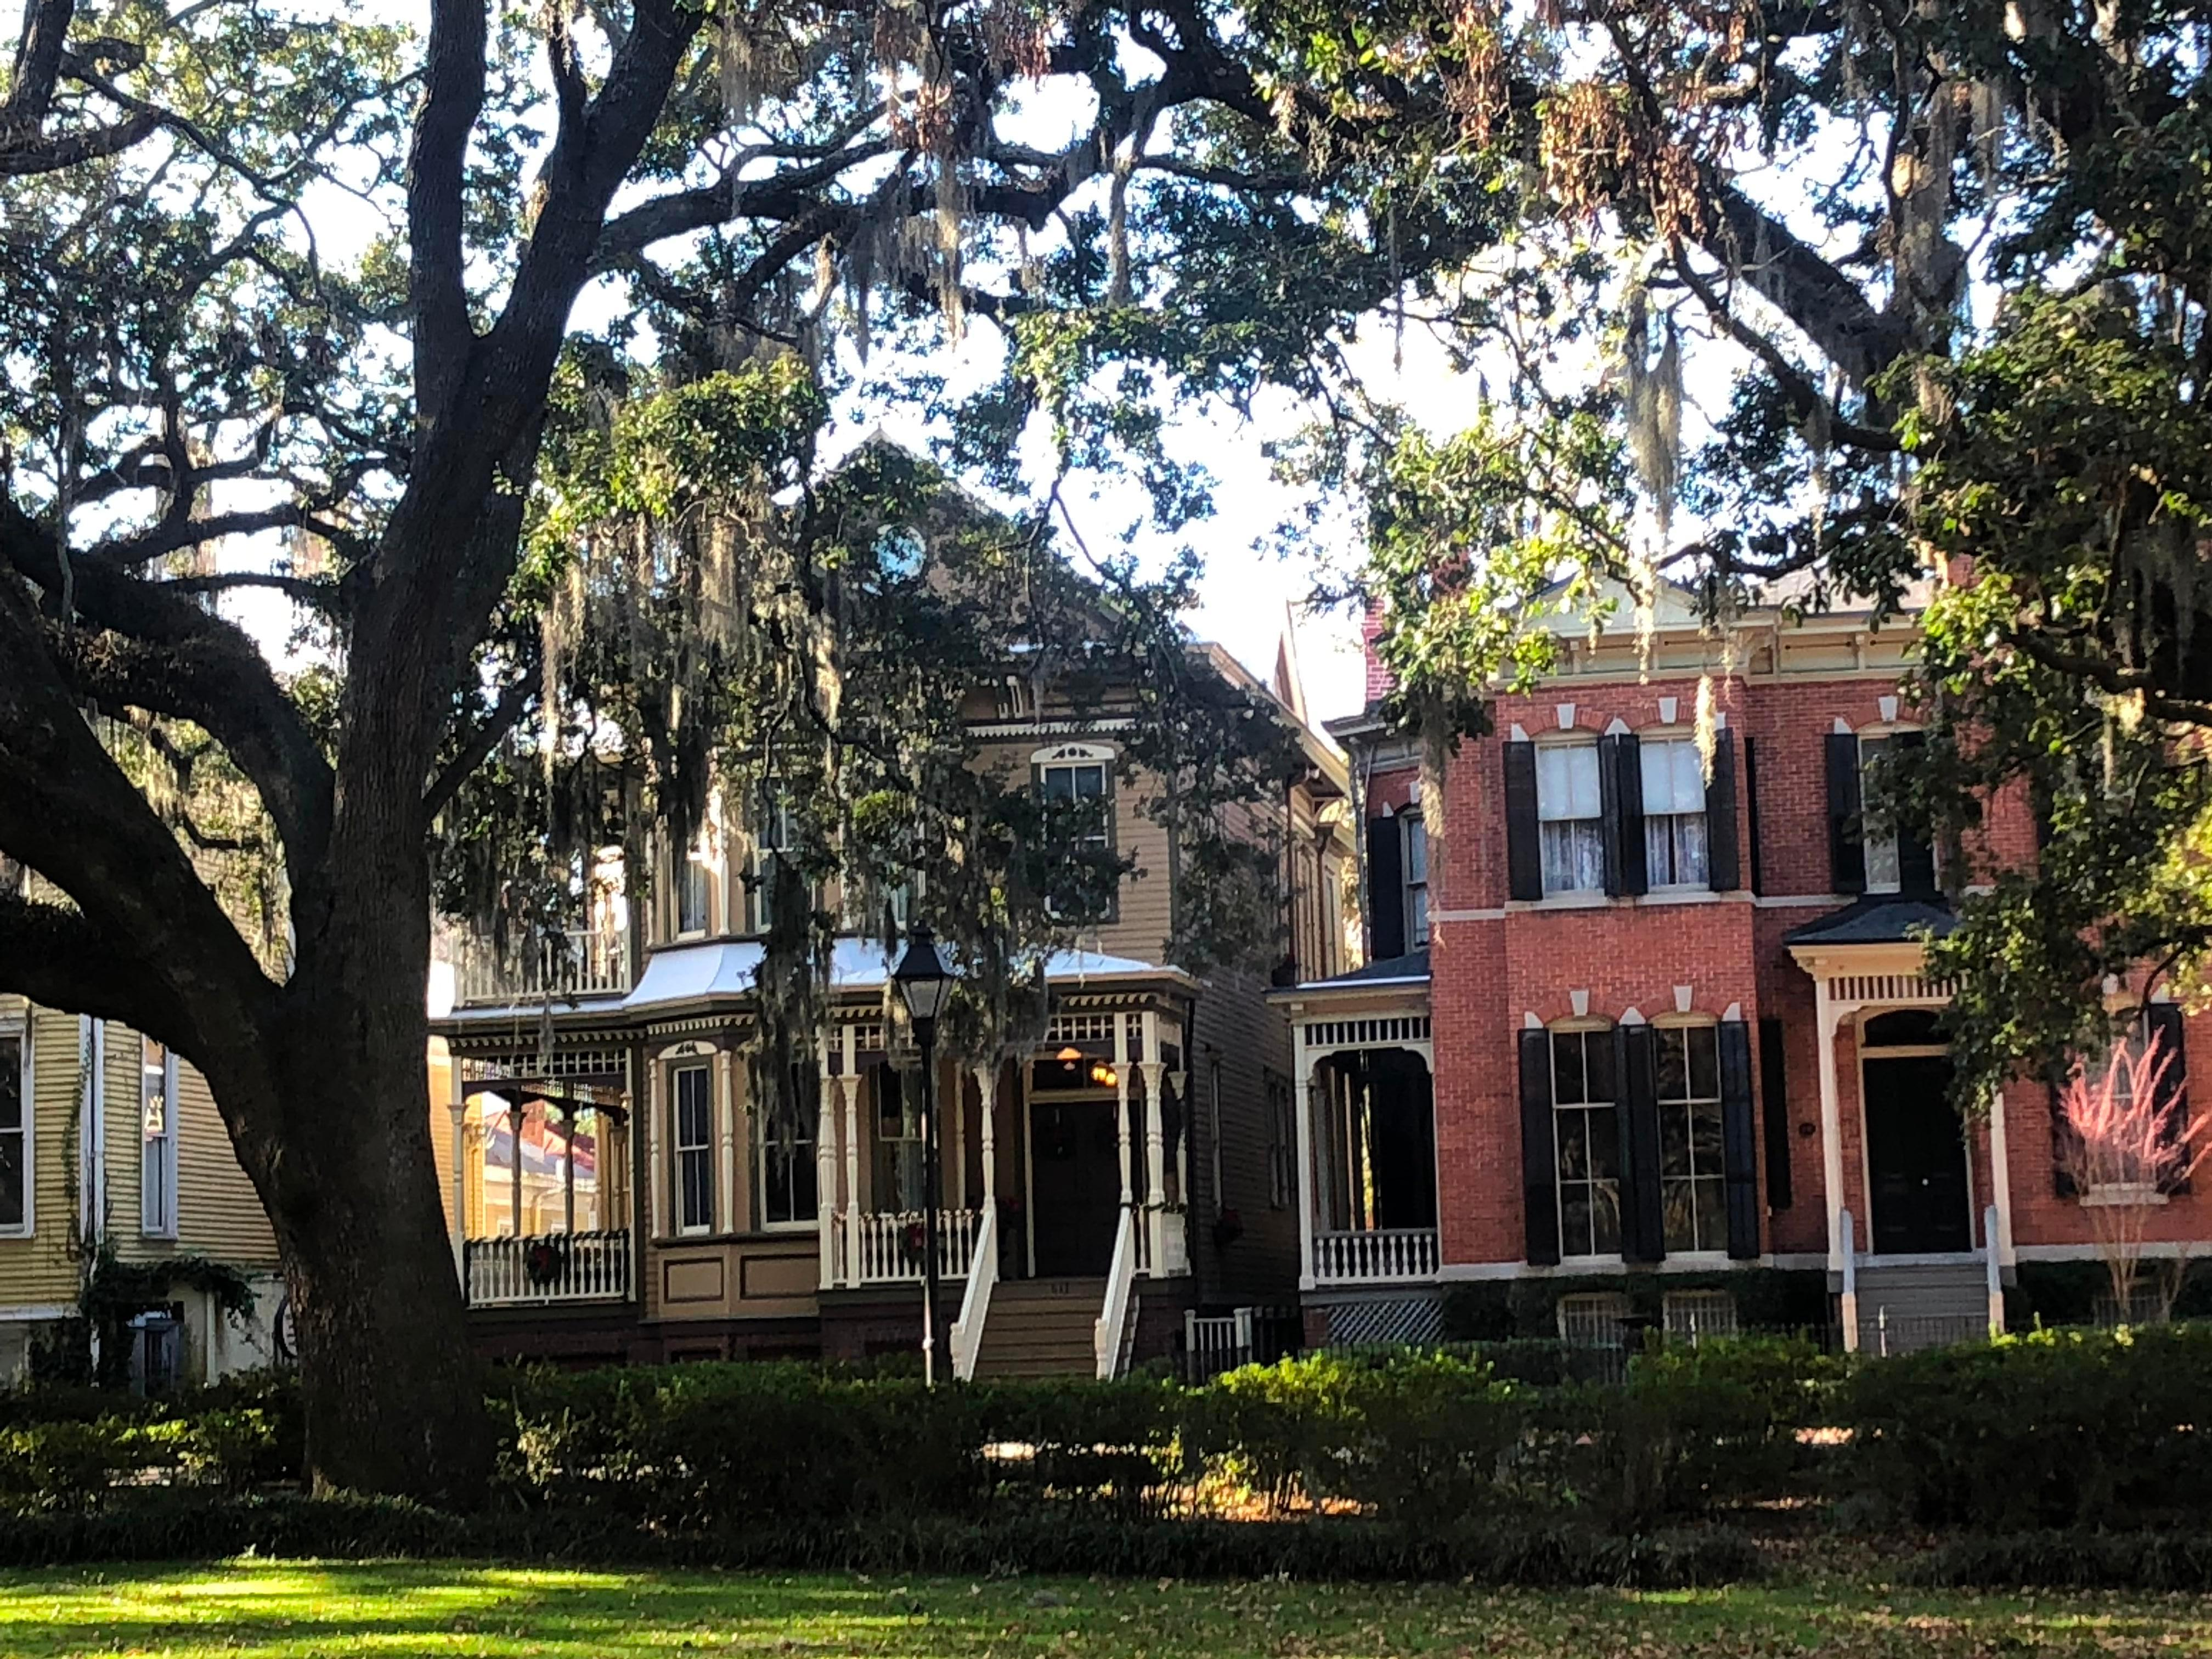 Amazing Homes on the Savannah Historic Overview Trolley Tour